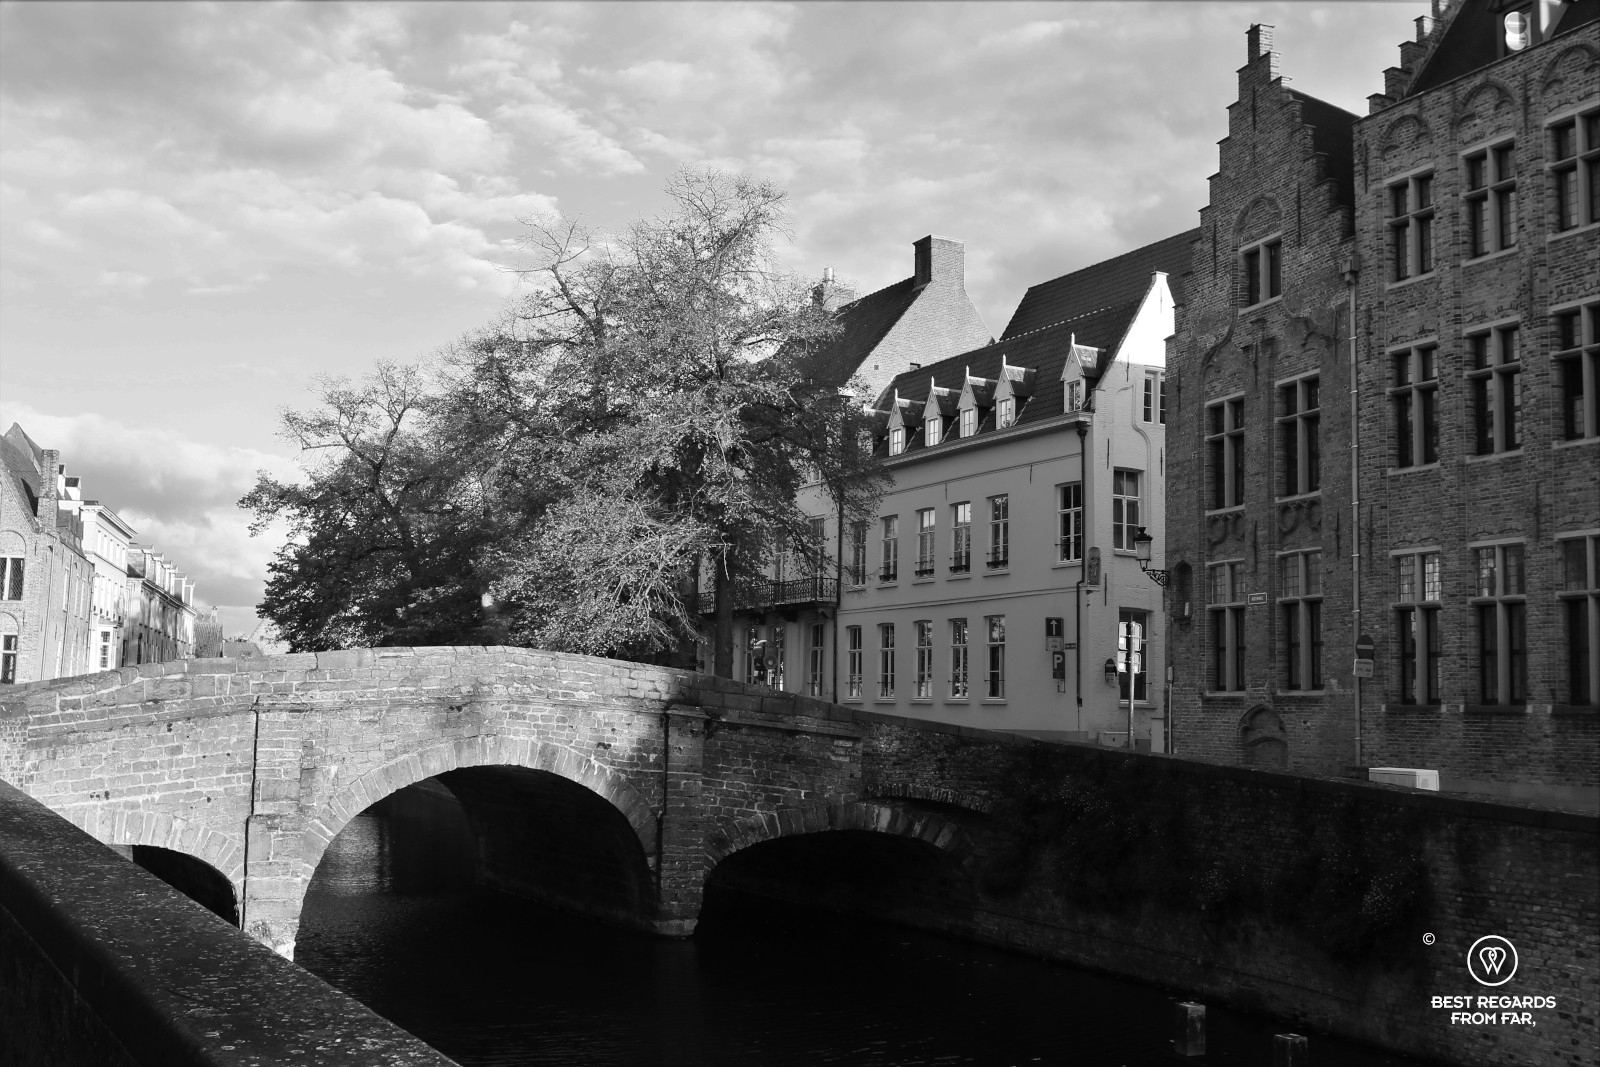 Haunted house along a canal in Bruges